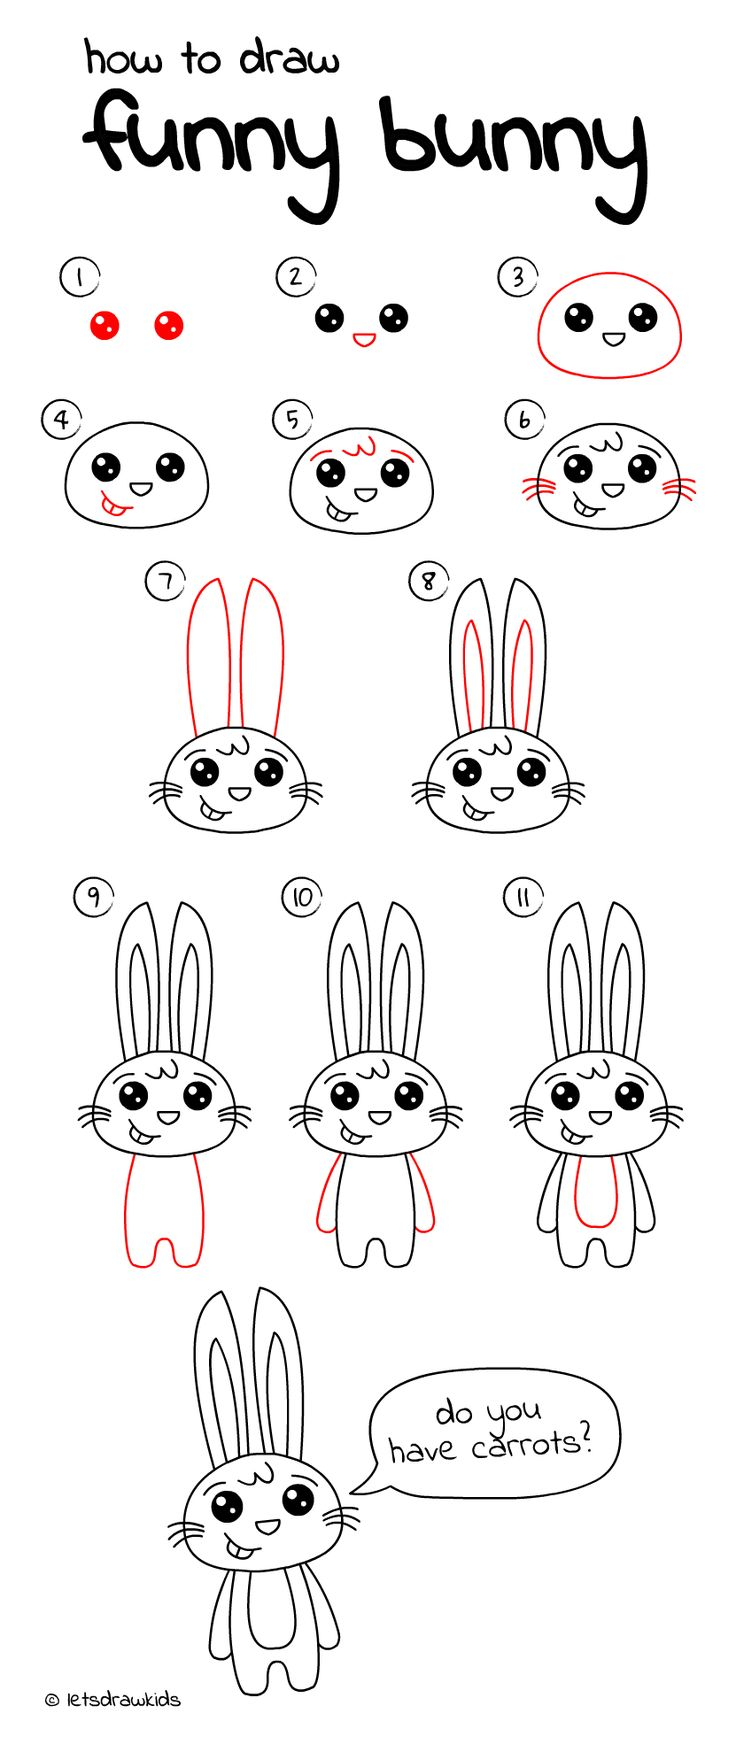 How To Draw Funny Bunny Easy Drawing, Step By Step, Perfect For Kids